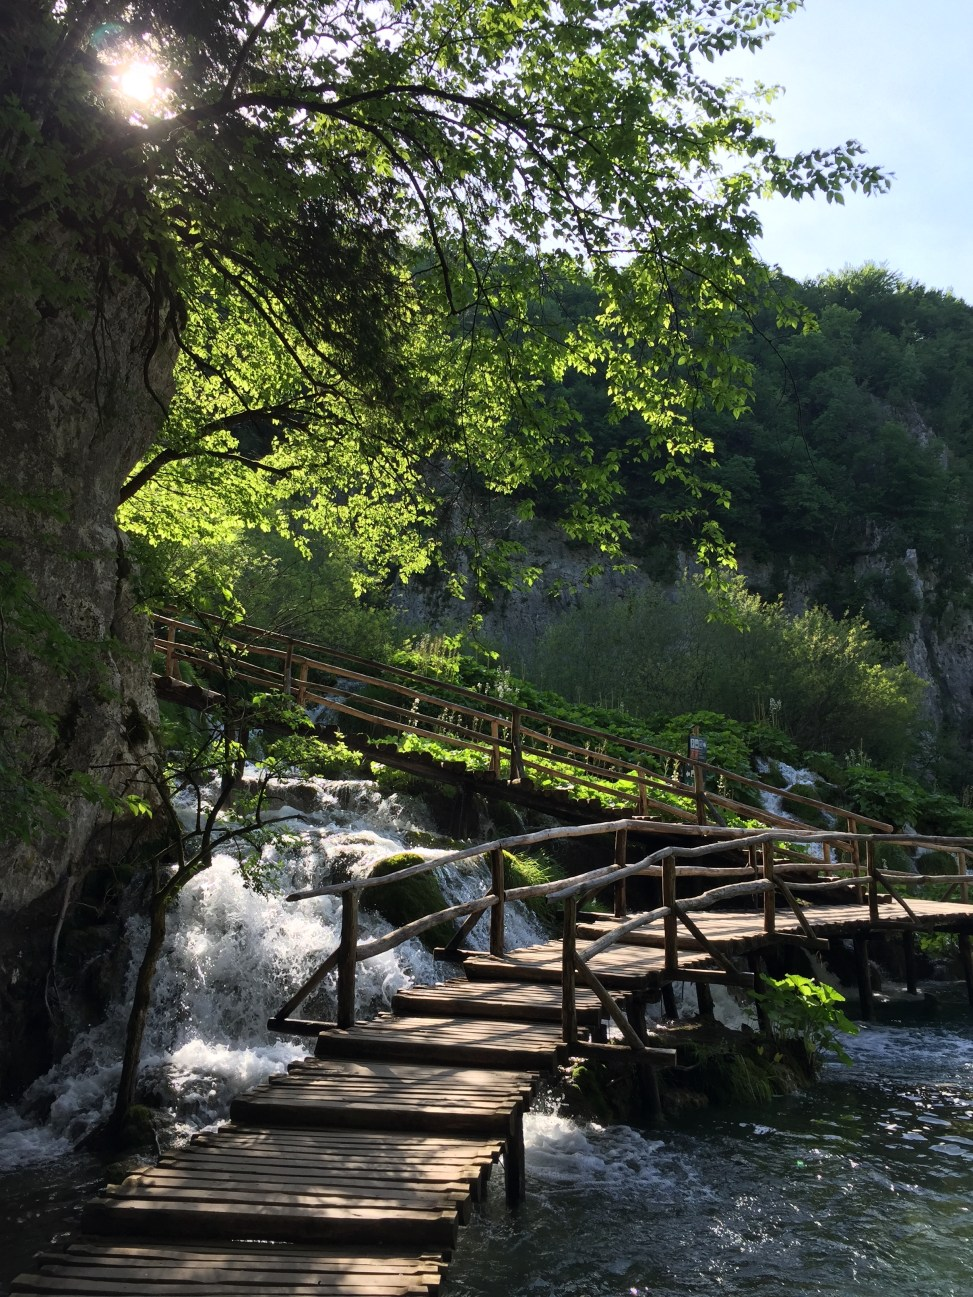 Trekking in the Plitvice Lakes National Park, Croatia.